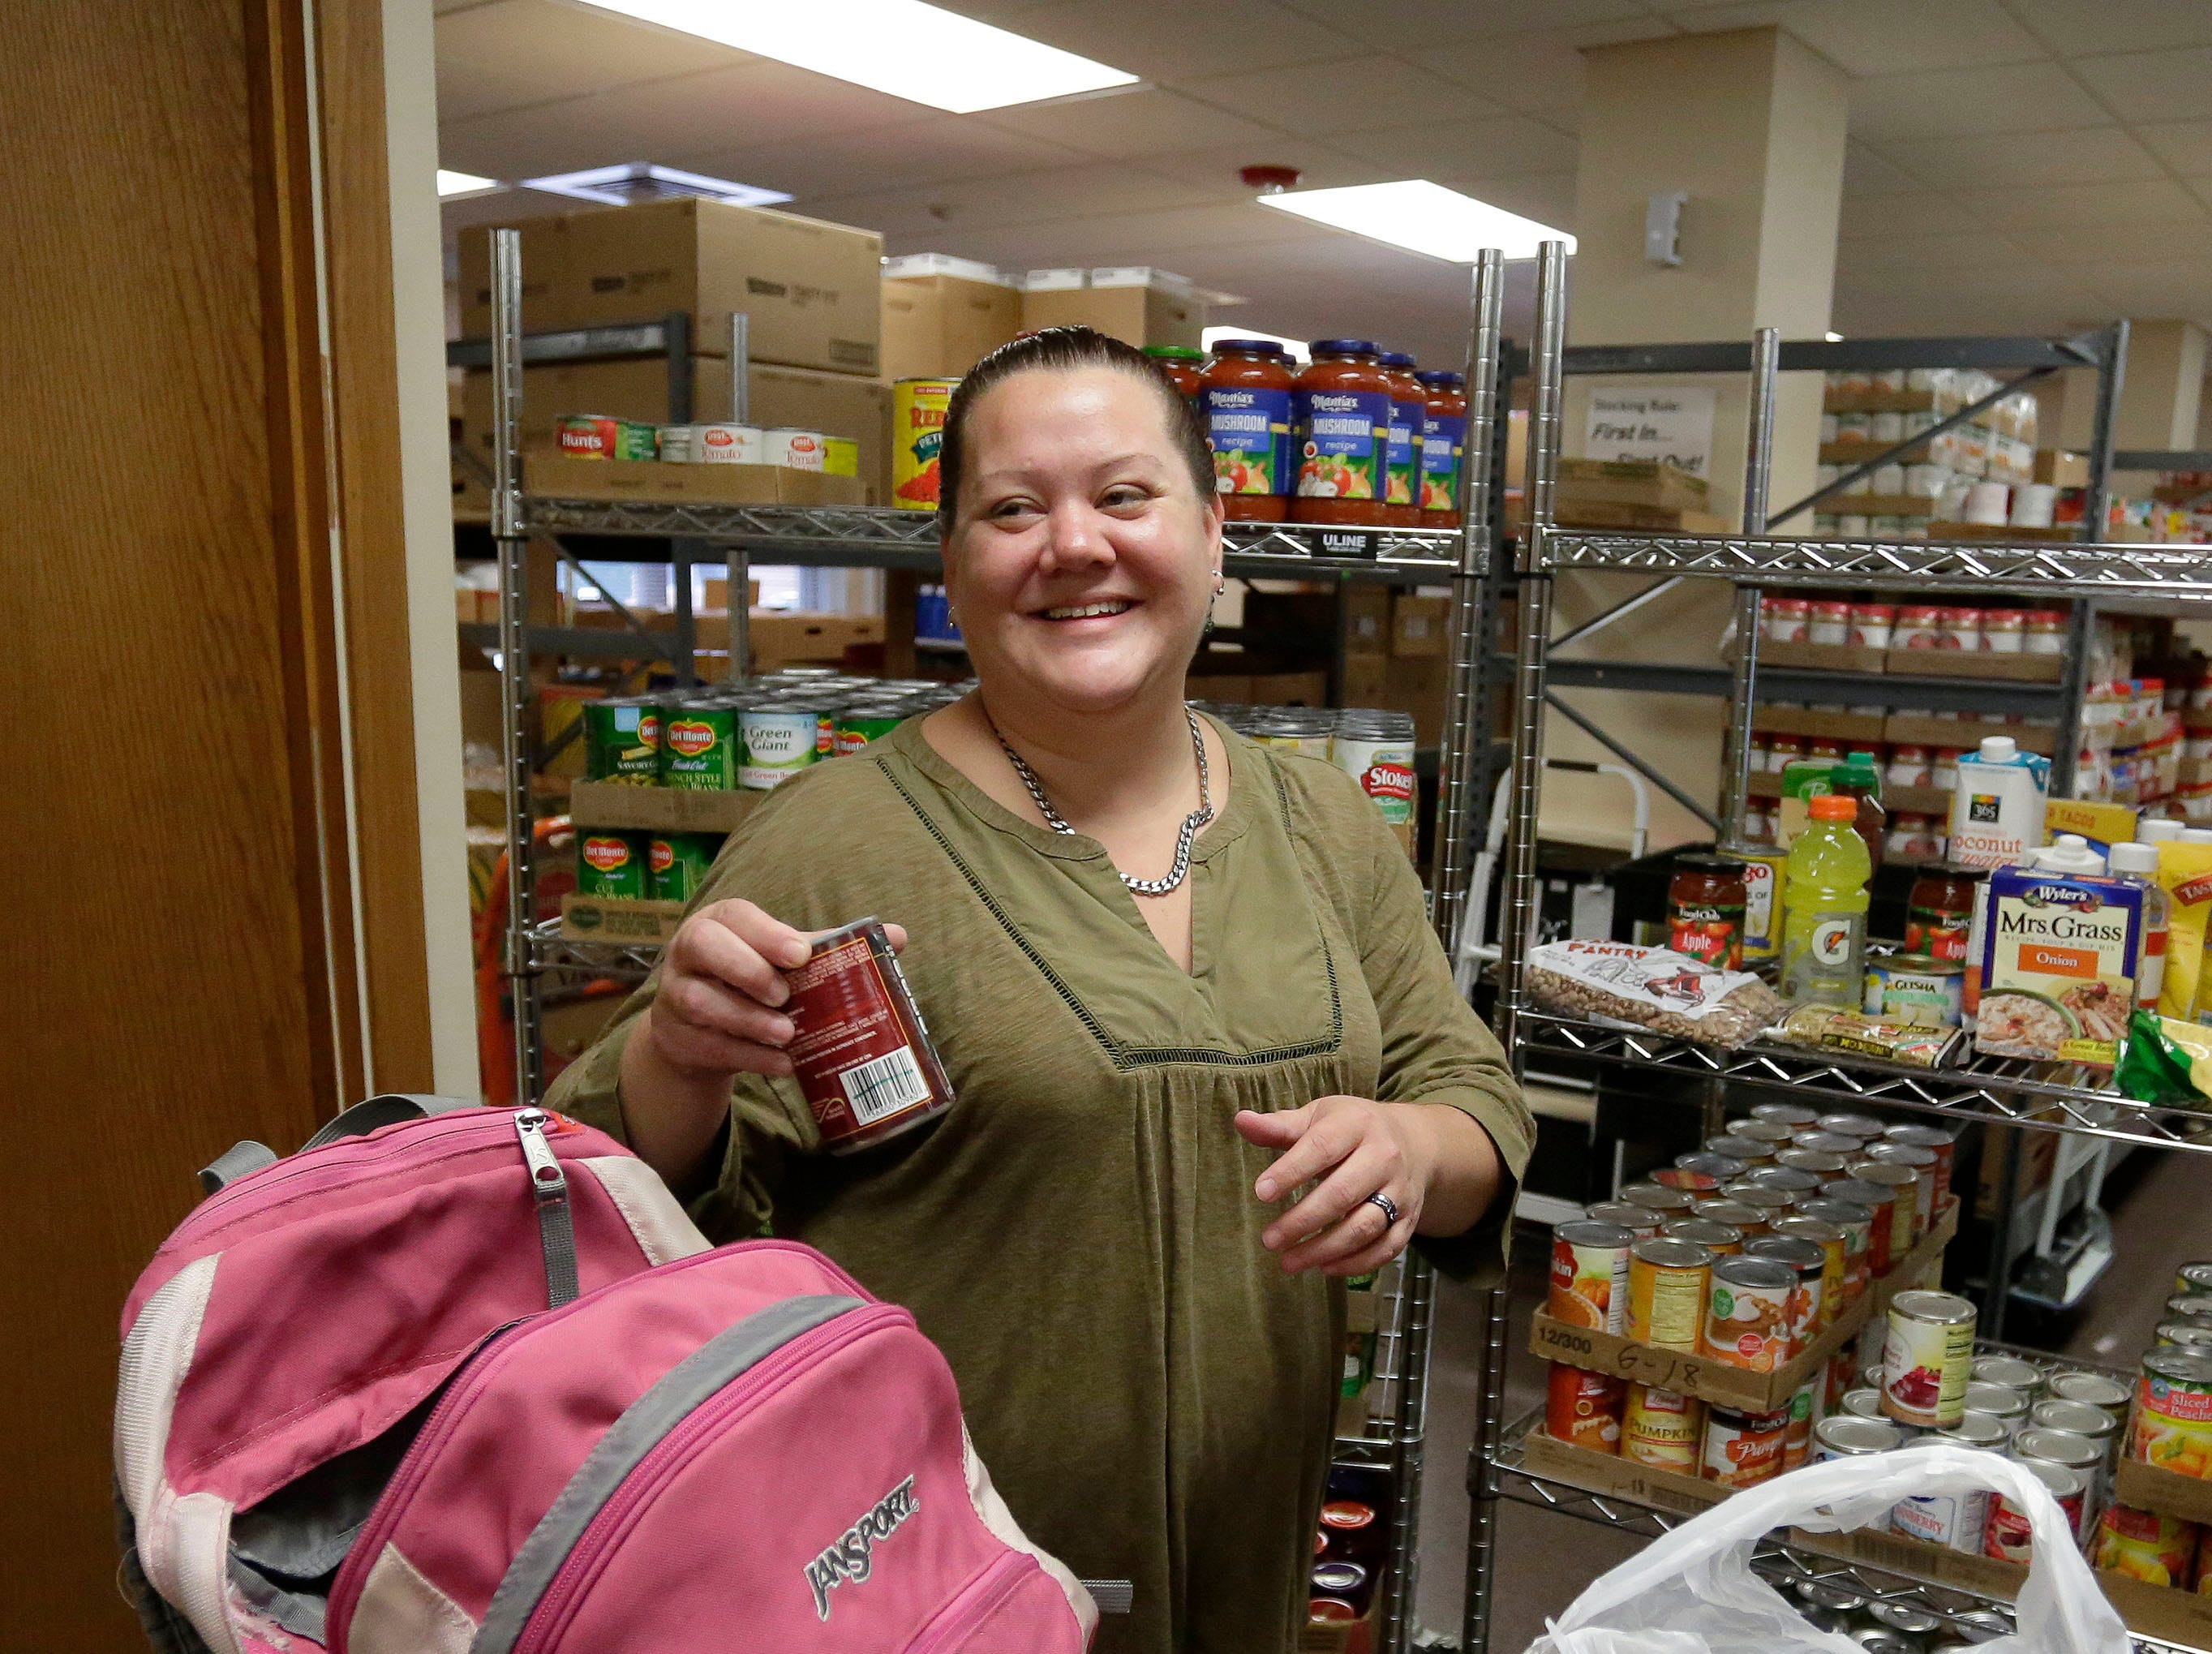 Sheboygan Salvation Army food pantry recipient Rose Hauch, of Sheboygan, Wis., smiles while on her monthly visit to the pantry, Thursday, September 20, 2018, in Sheboygan, Wis.